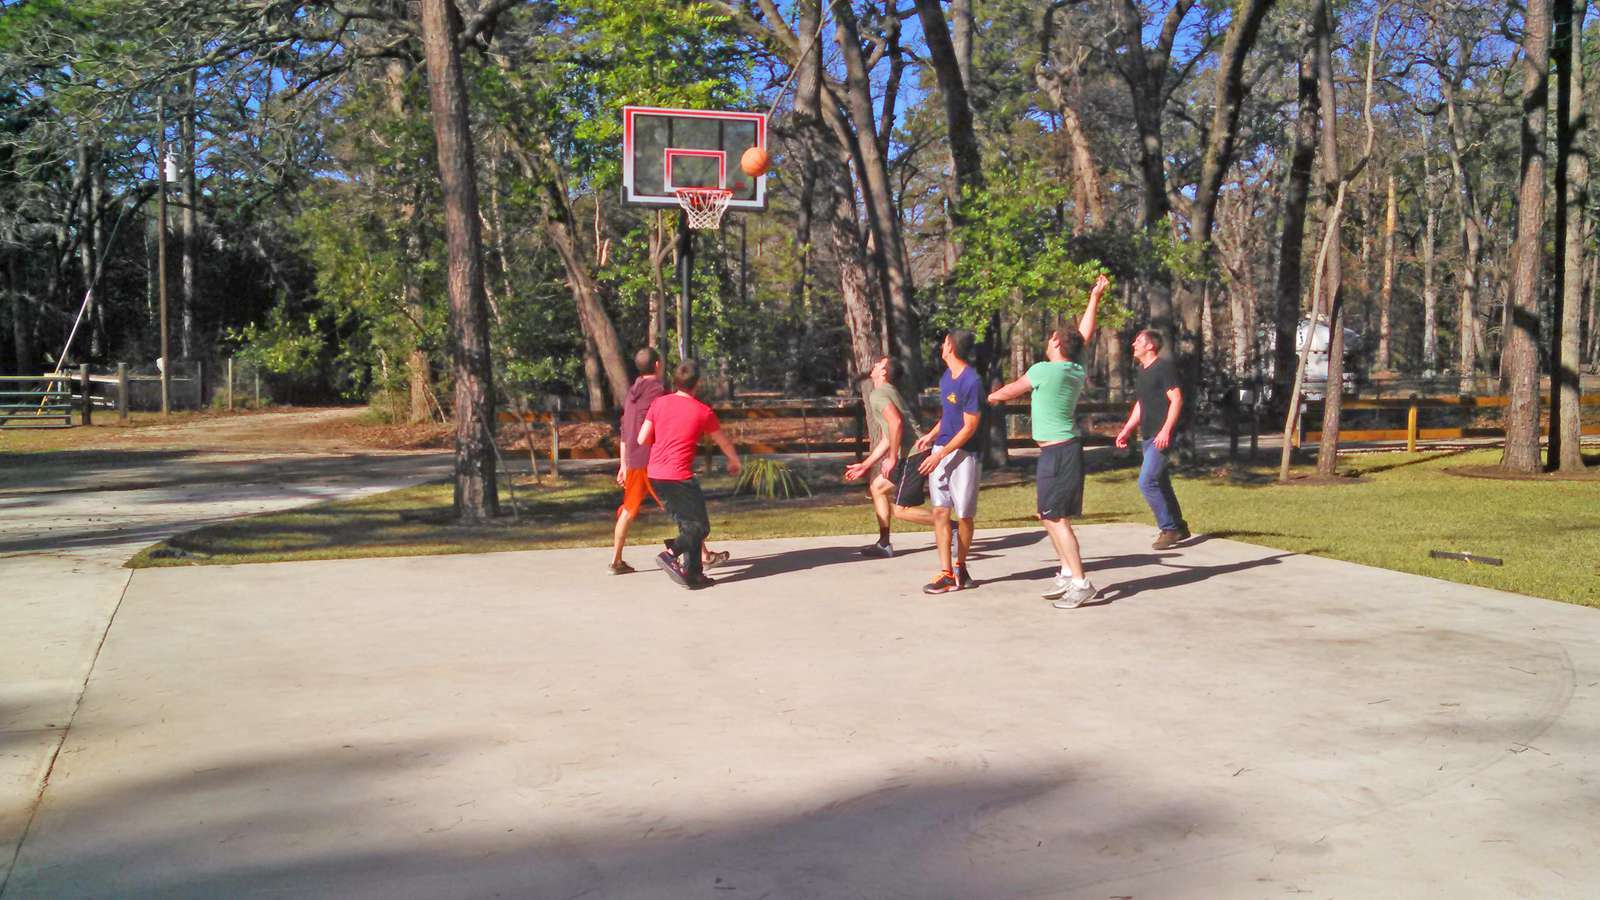 Just in case you have any energy left you can enjoy a game of basketball on our full court.